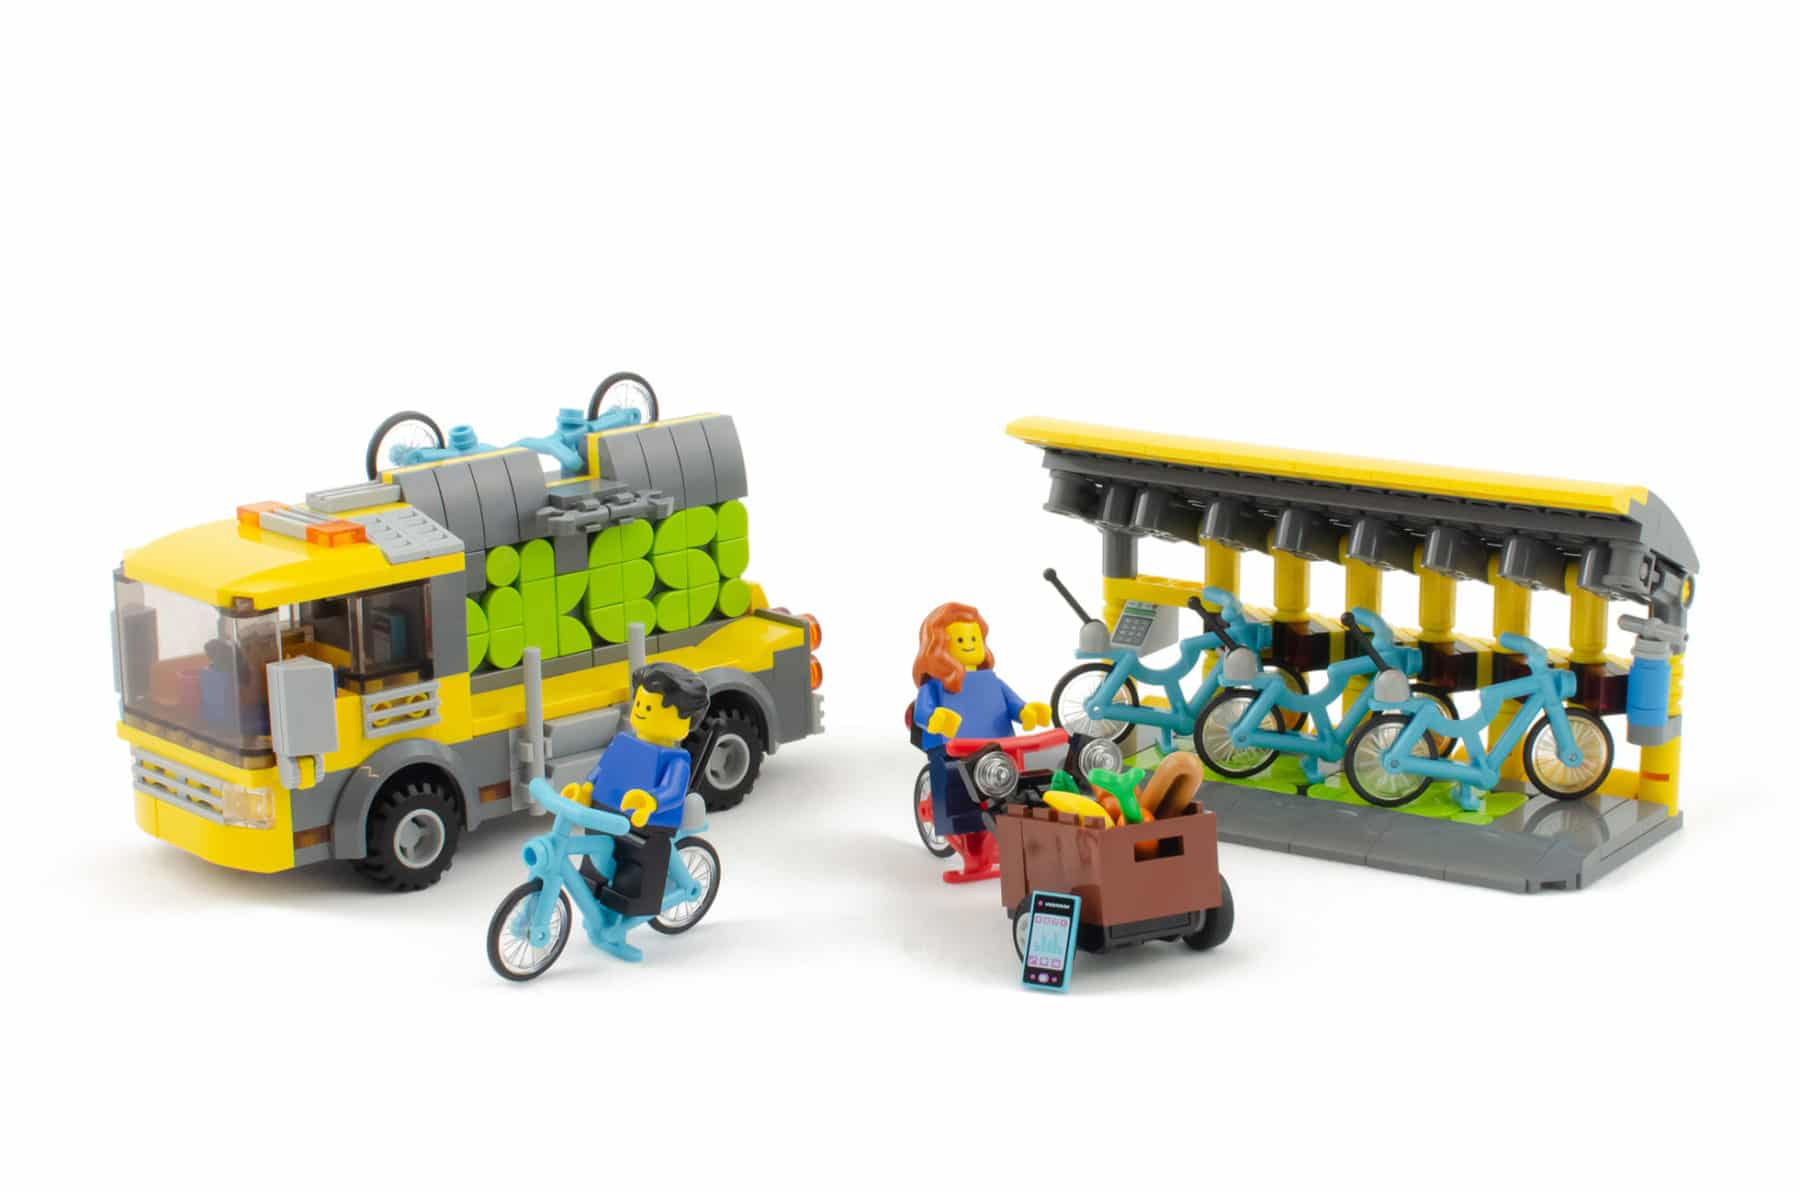 Bricklink AFOL Designer Program: Bikes!